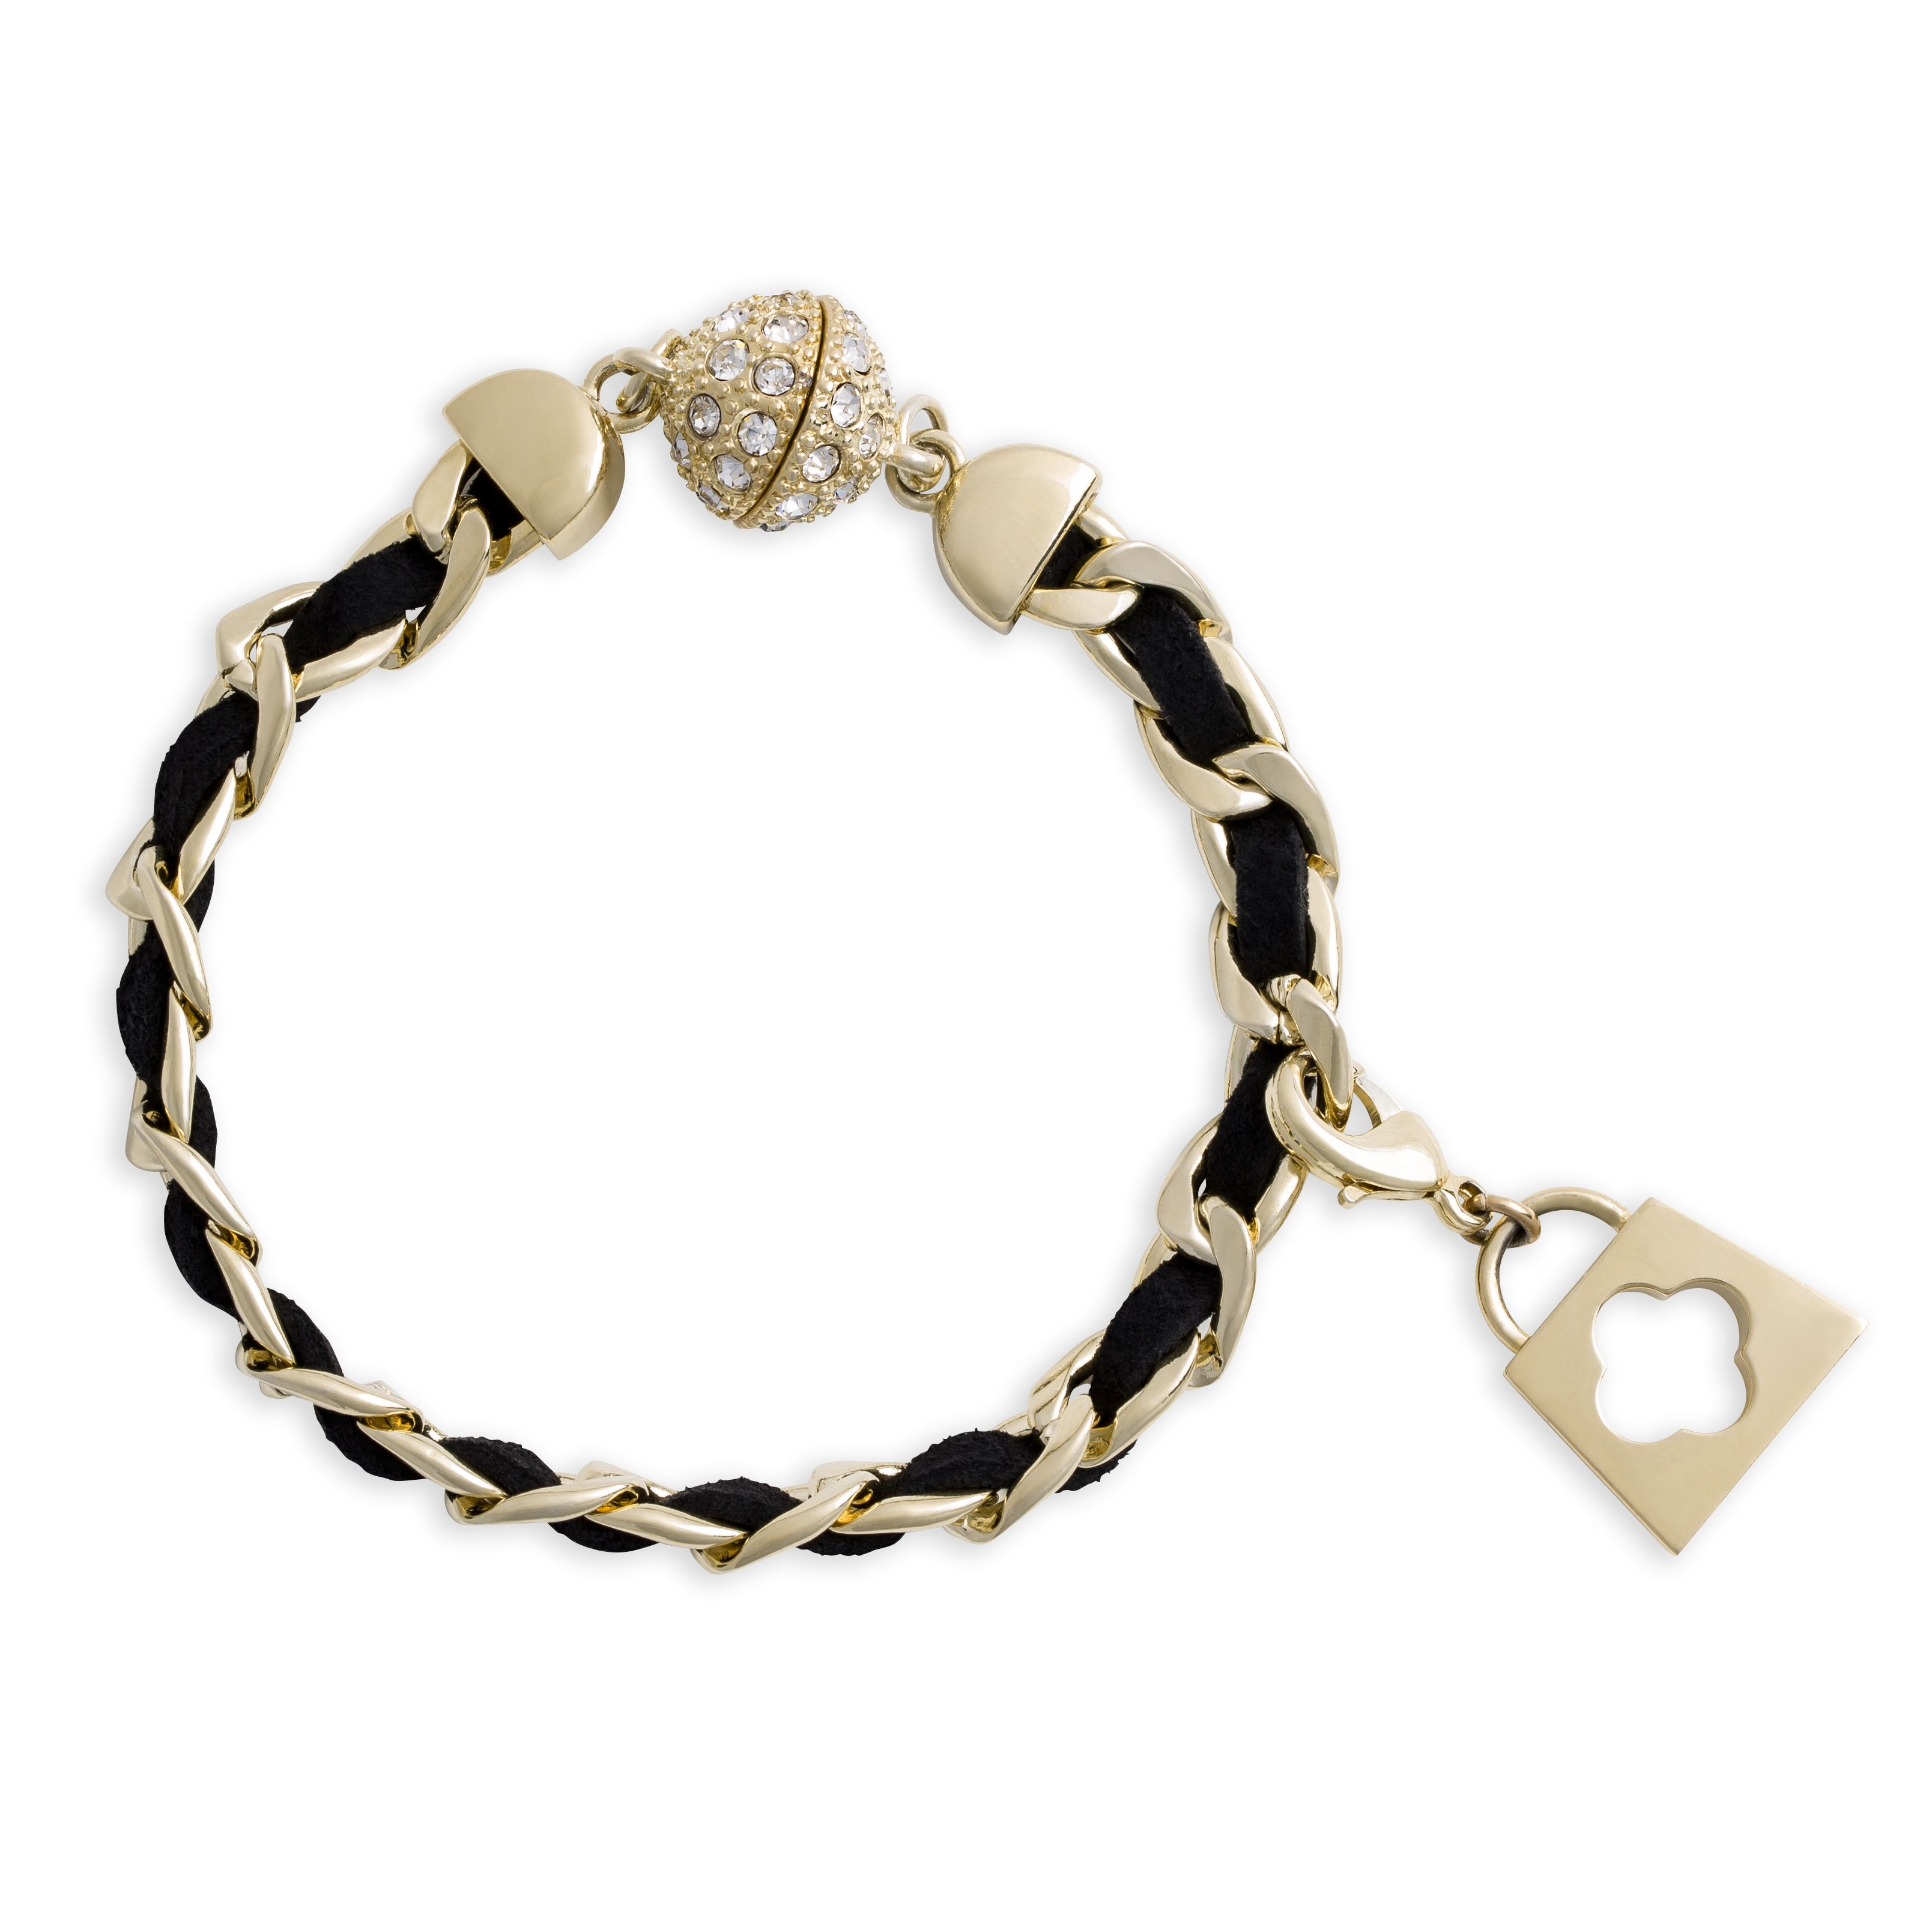 Gold link and leather bracelet/ double necklace accent  Available 2/1/14 at http://janna.miche.com/shop